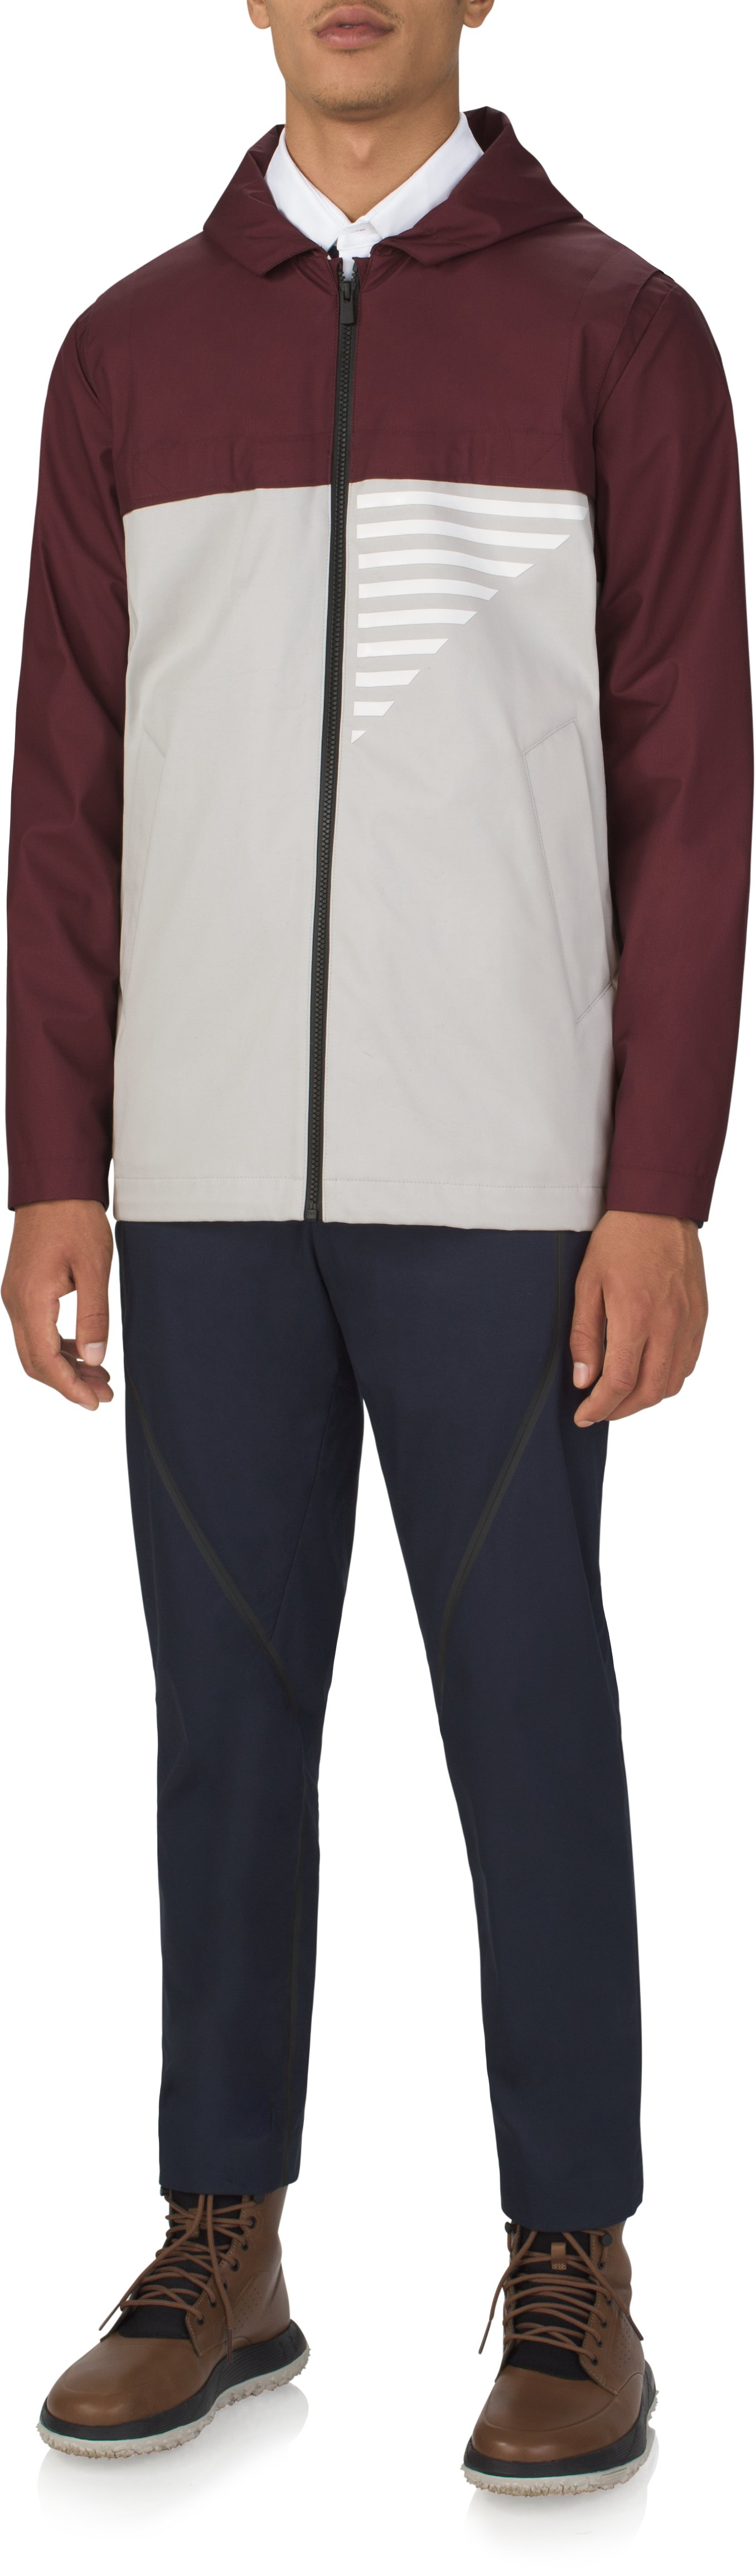 Men's UAS Coxswain Graphic Jacket, Burgundy, Front